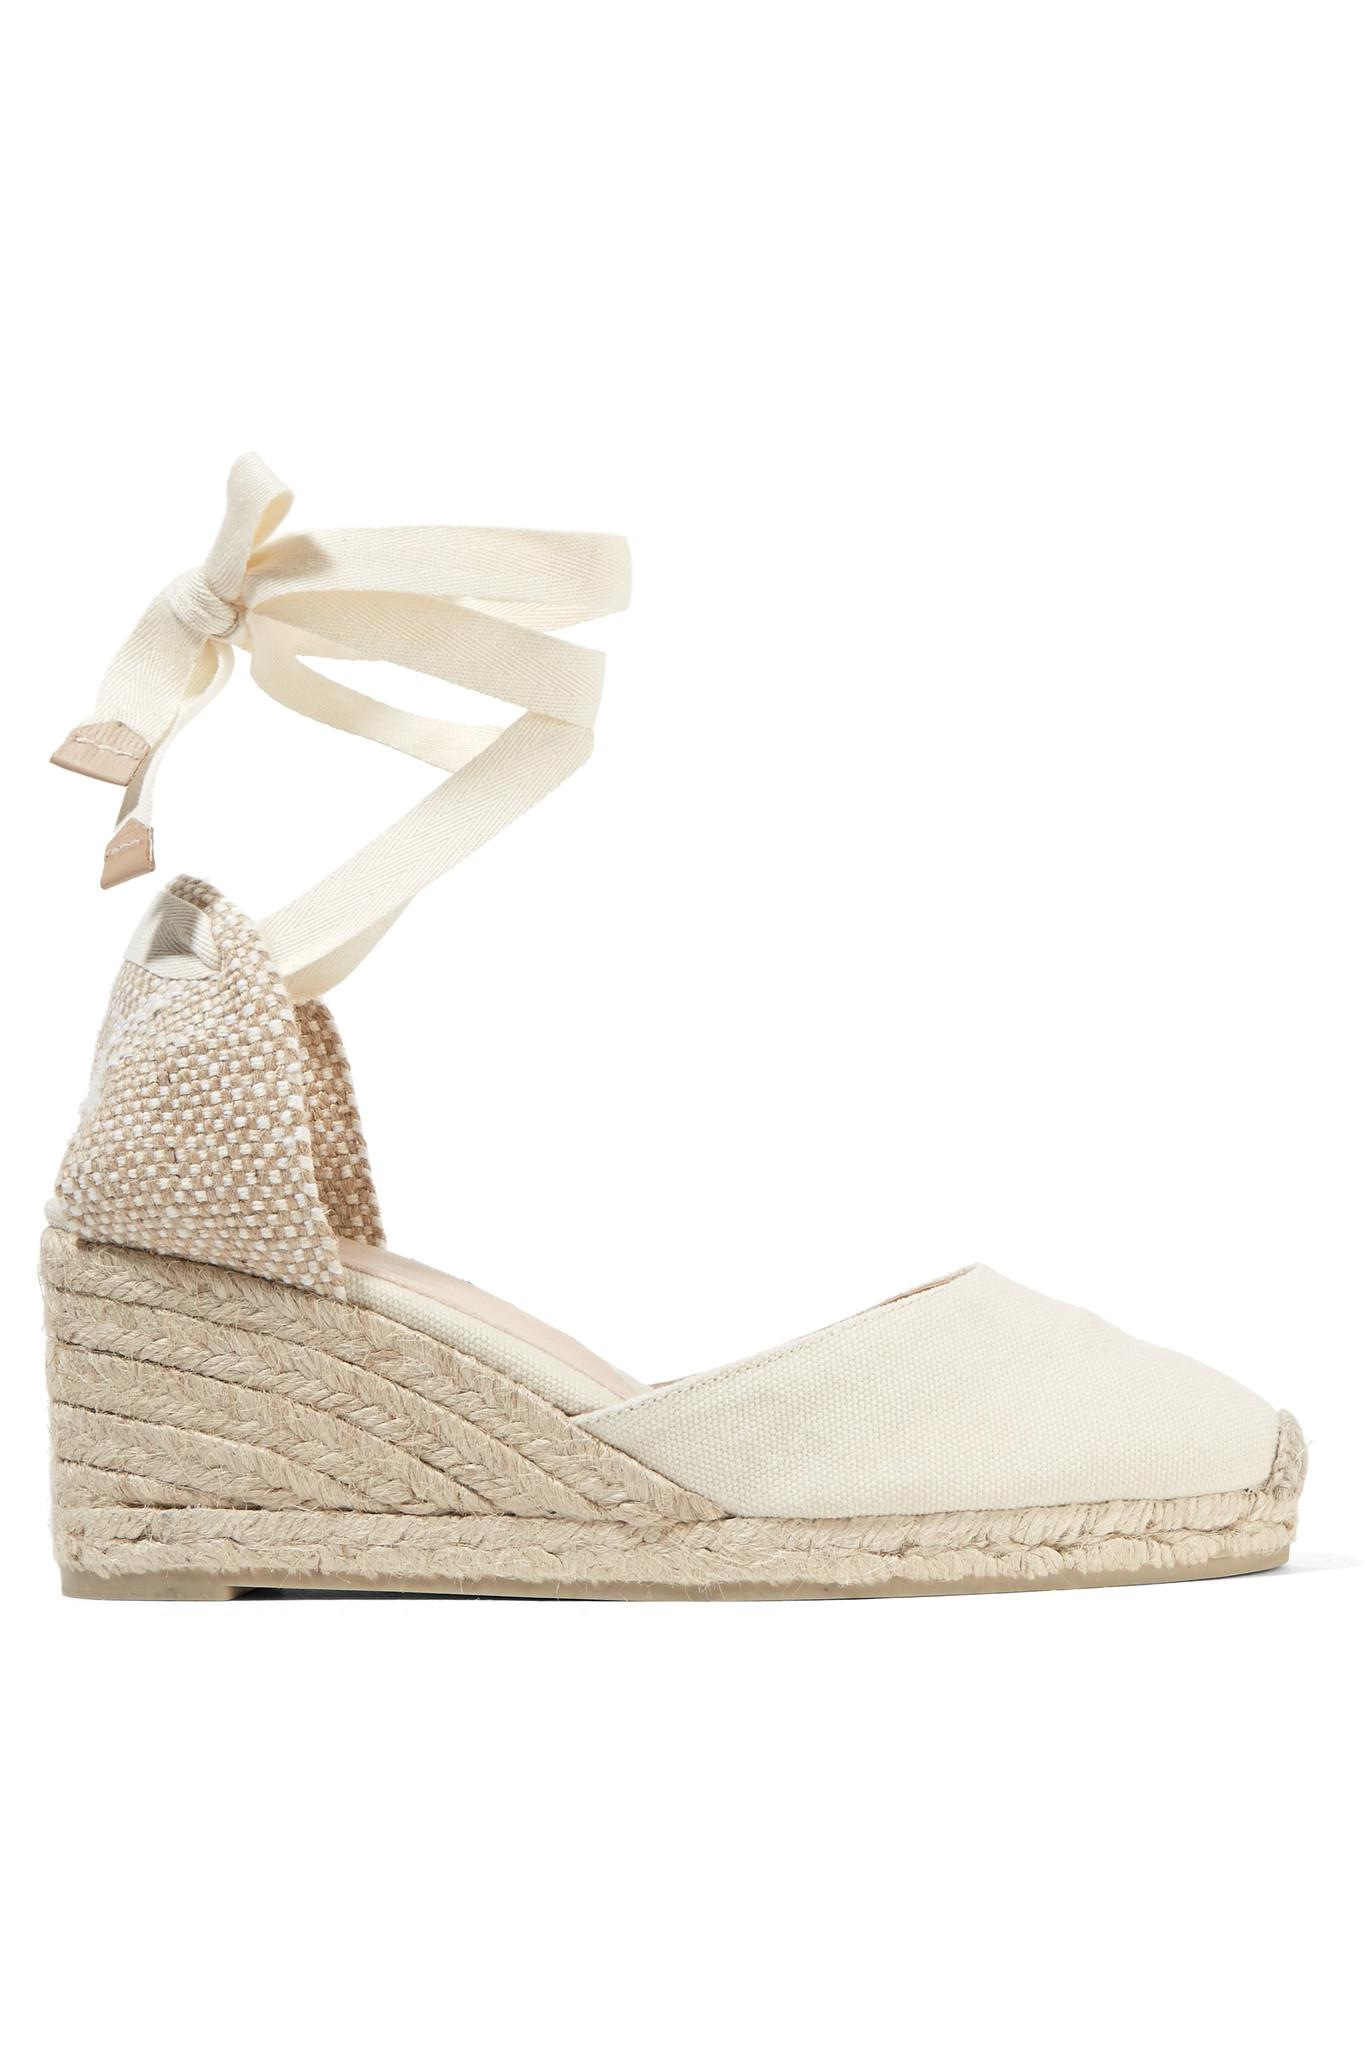 8e15870a710 Castaner Carina 60 Canvas Wedge Espadrilles in White - Lyst